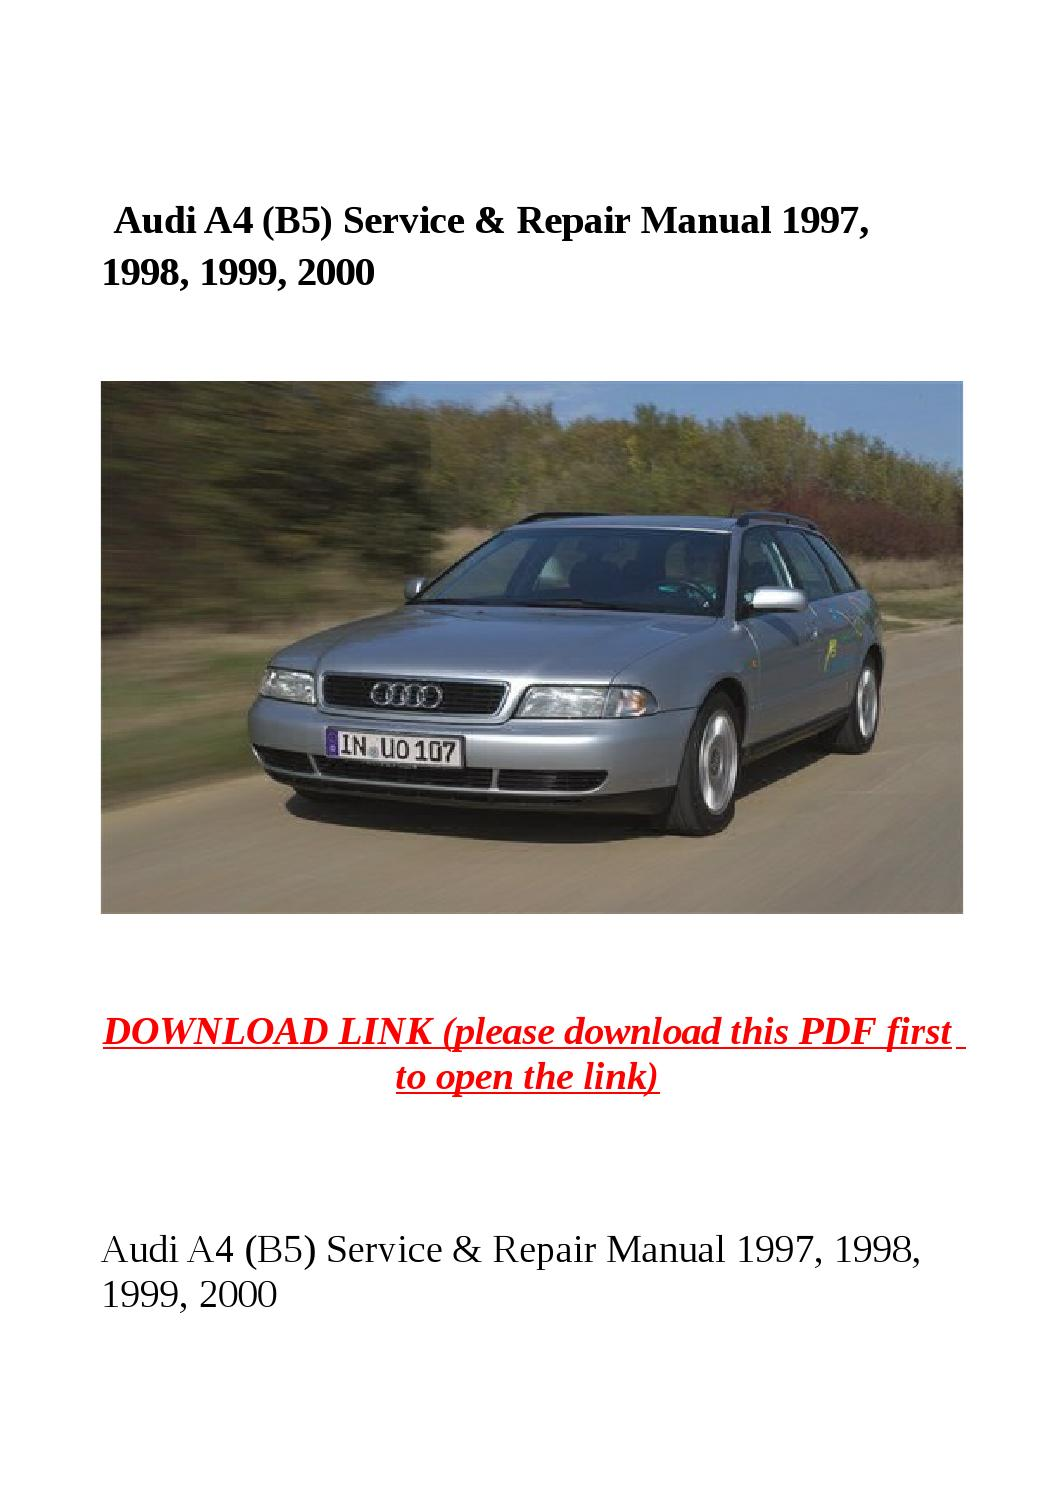 audi a4 b5 service repair manual 1997 1998 1999. Black Bedroom Furniture Sets. Home Design Ideas